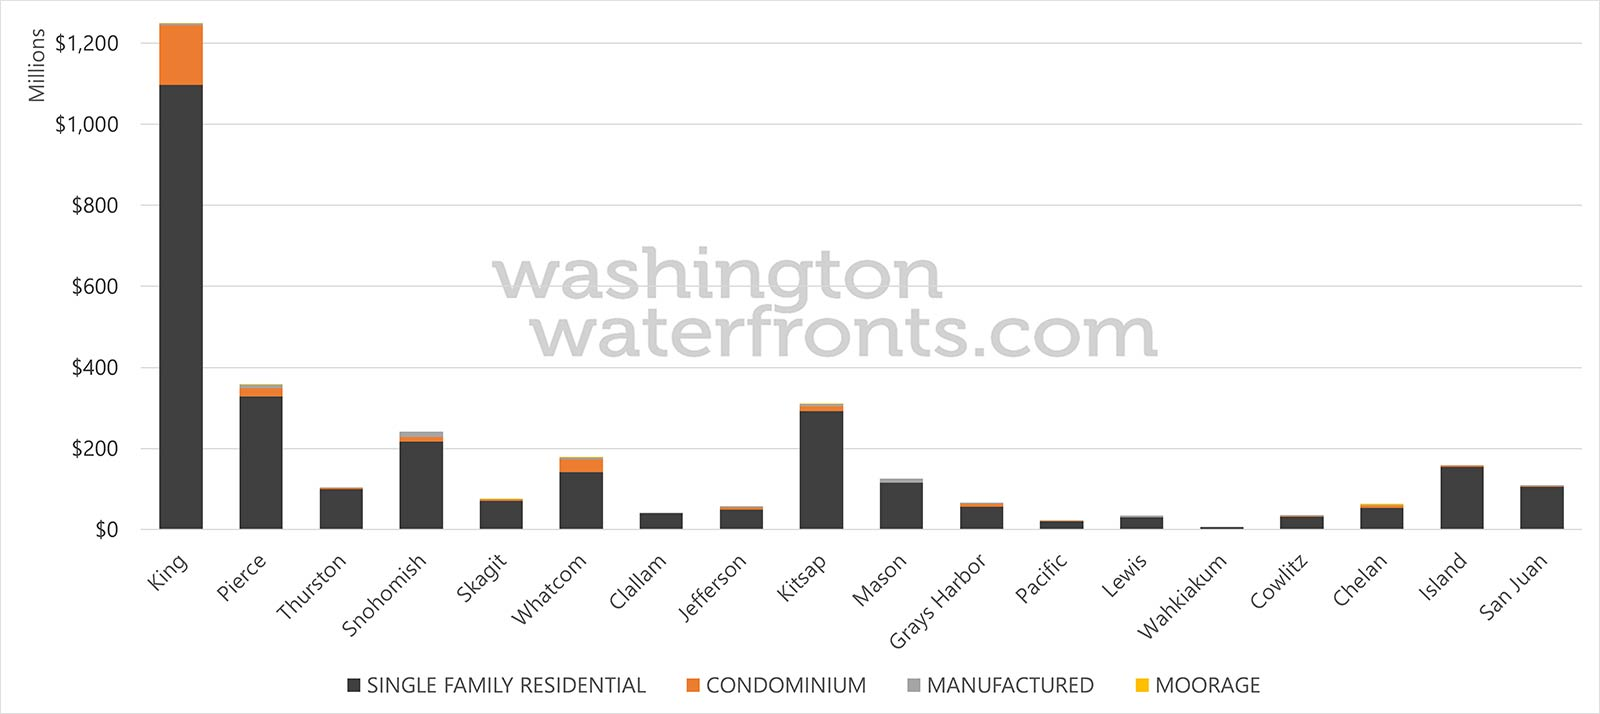 Washington State 2018 Waterfront Transaction by Property Type